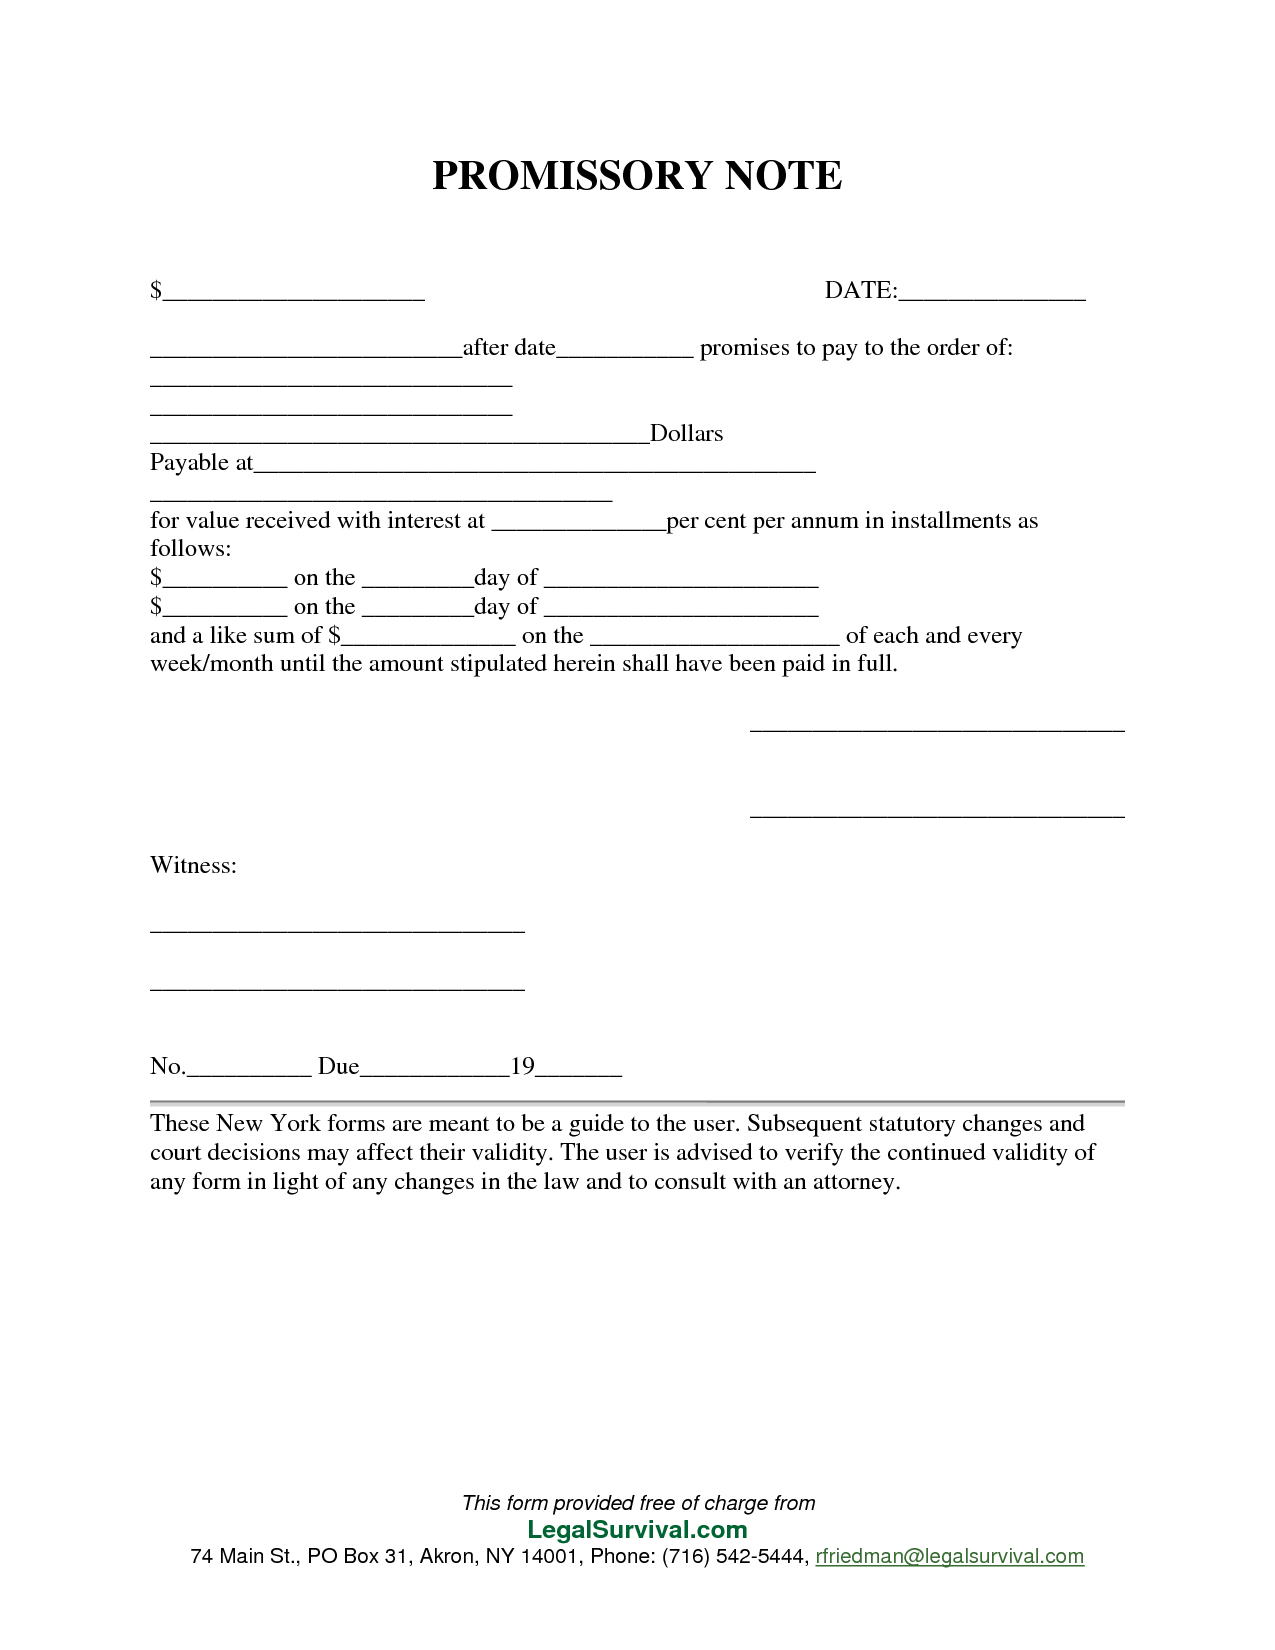 Permalink To Free Promissory Note Template   Templates, Printables - Free Promissory Note Printable Form